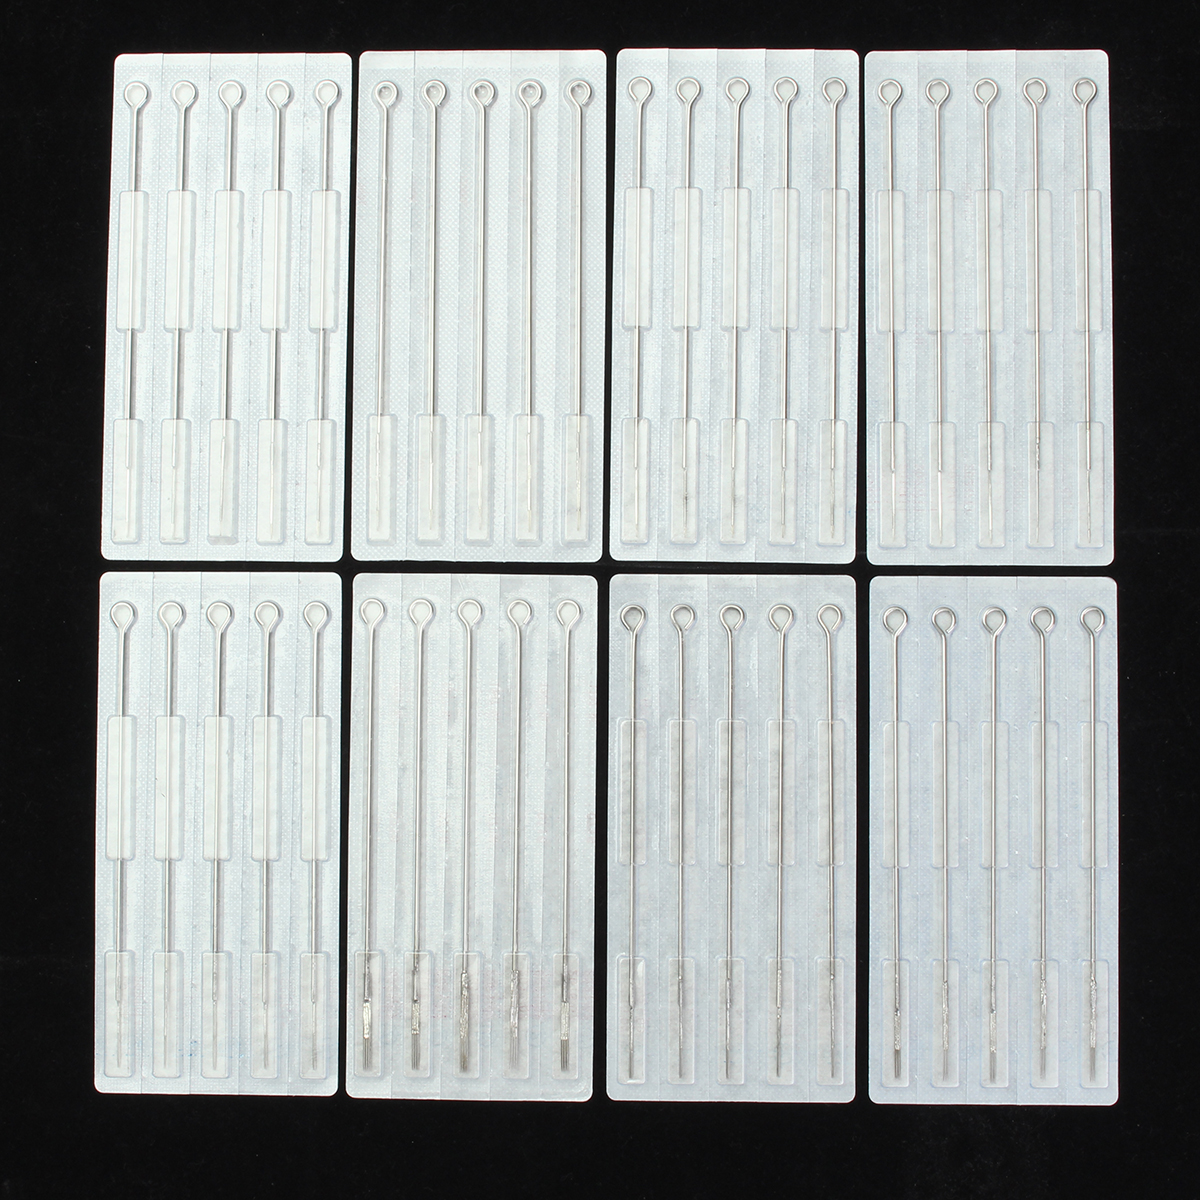 100Pcs Mix Sizes Sterile Disposable Tattoo Accessories Needles 3 5 7 9 RL 5 7 9 RS M1 Size